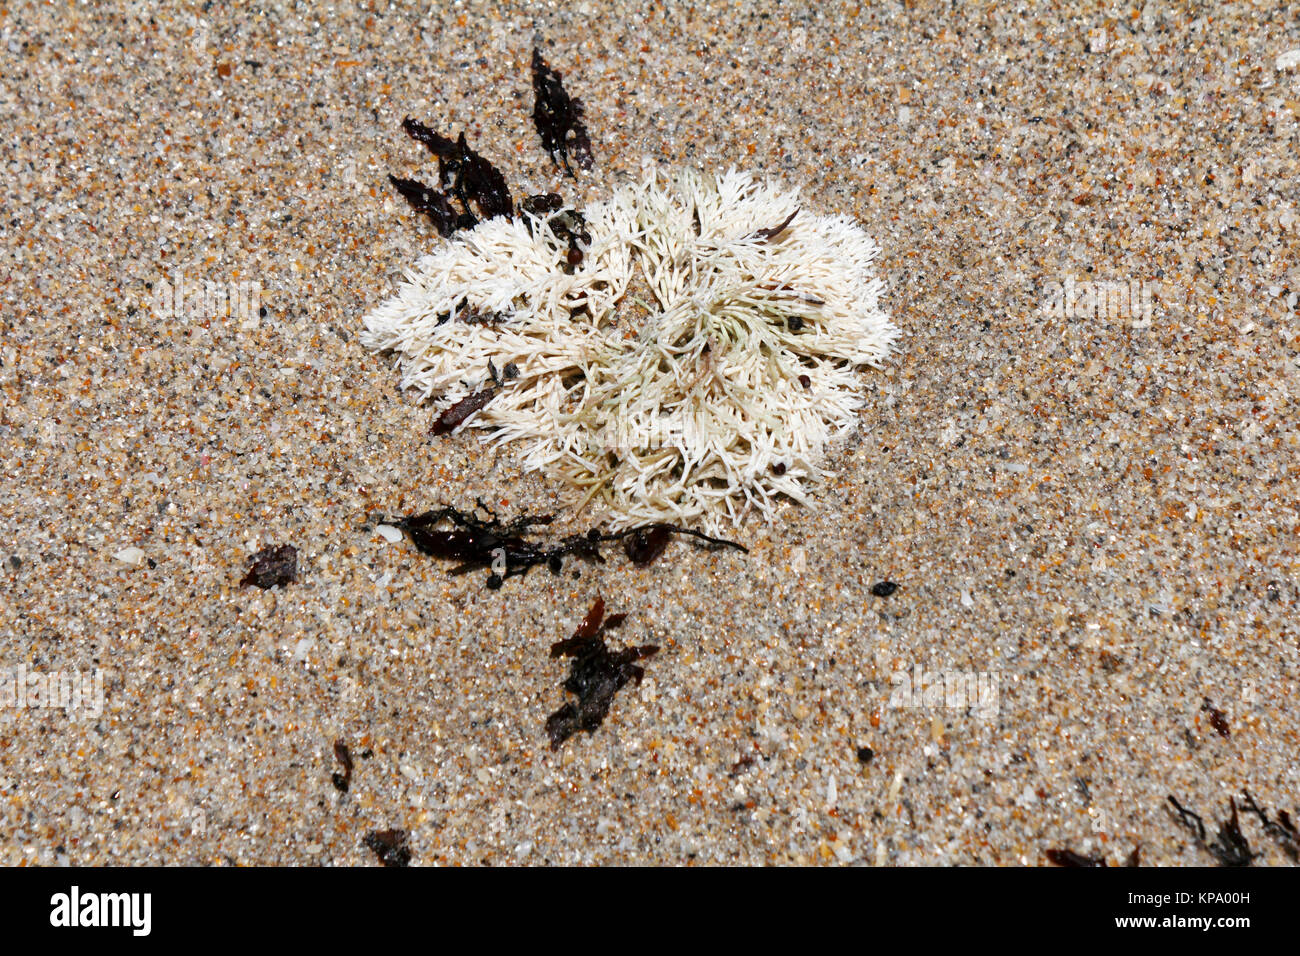 Coral Weed on a Sunny Beach - Stock Image